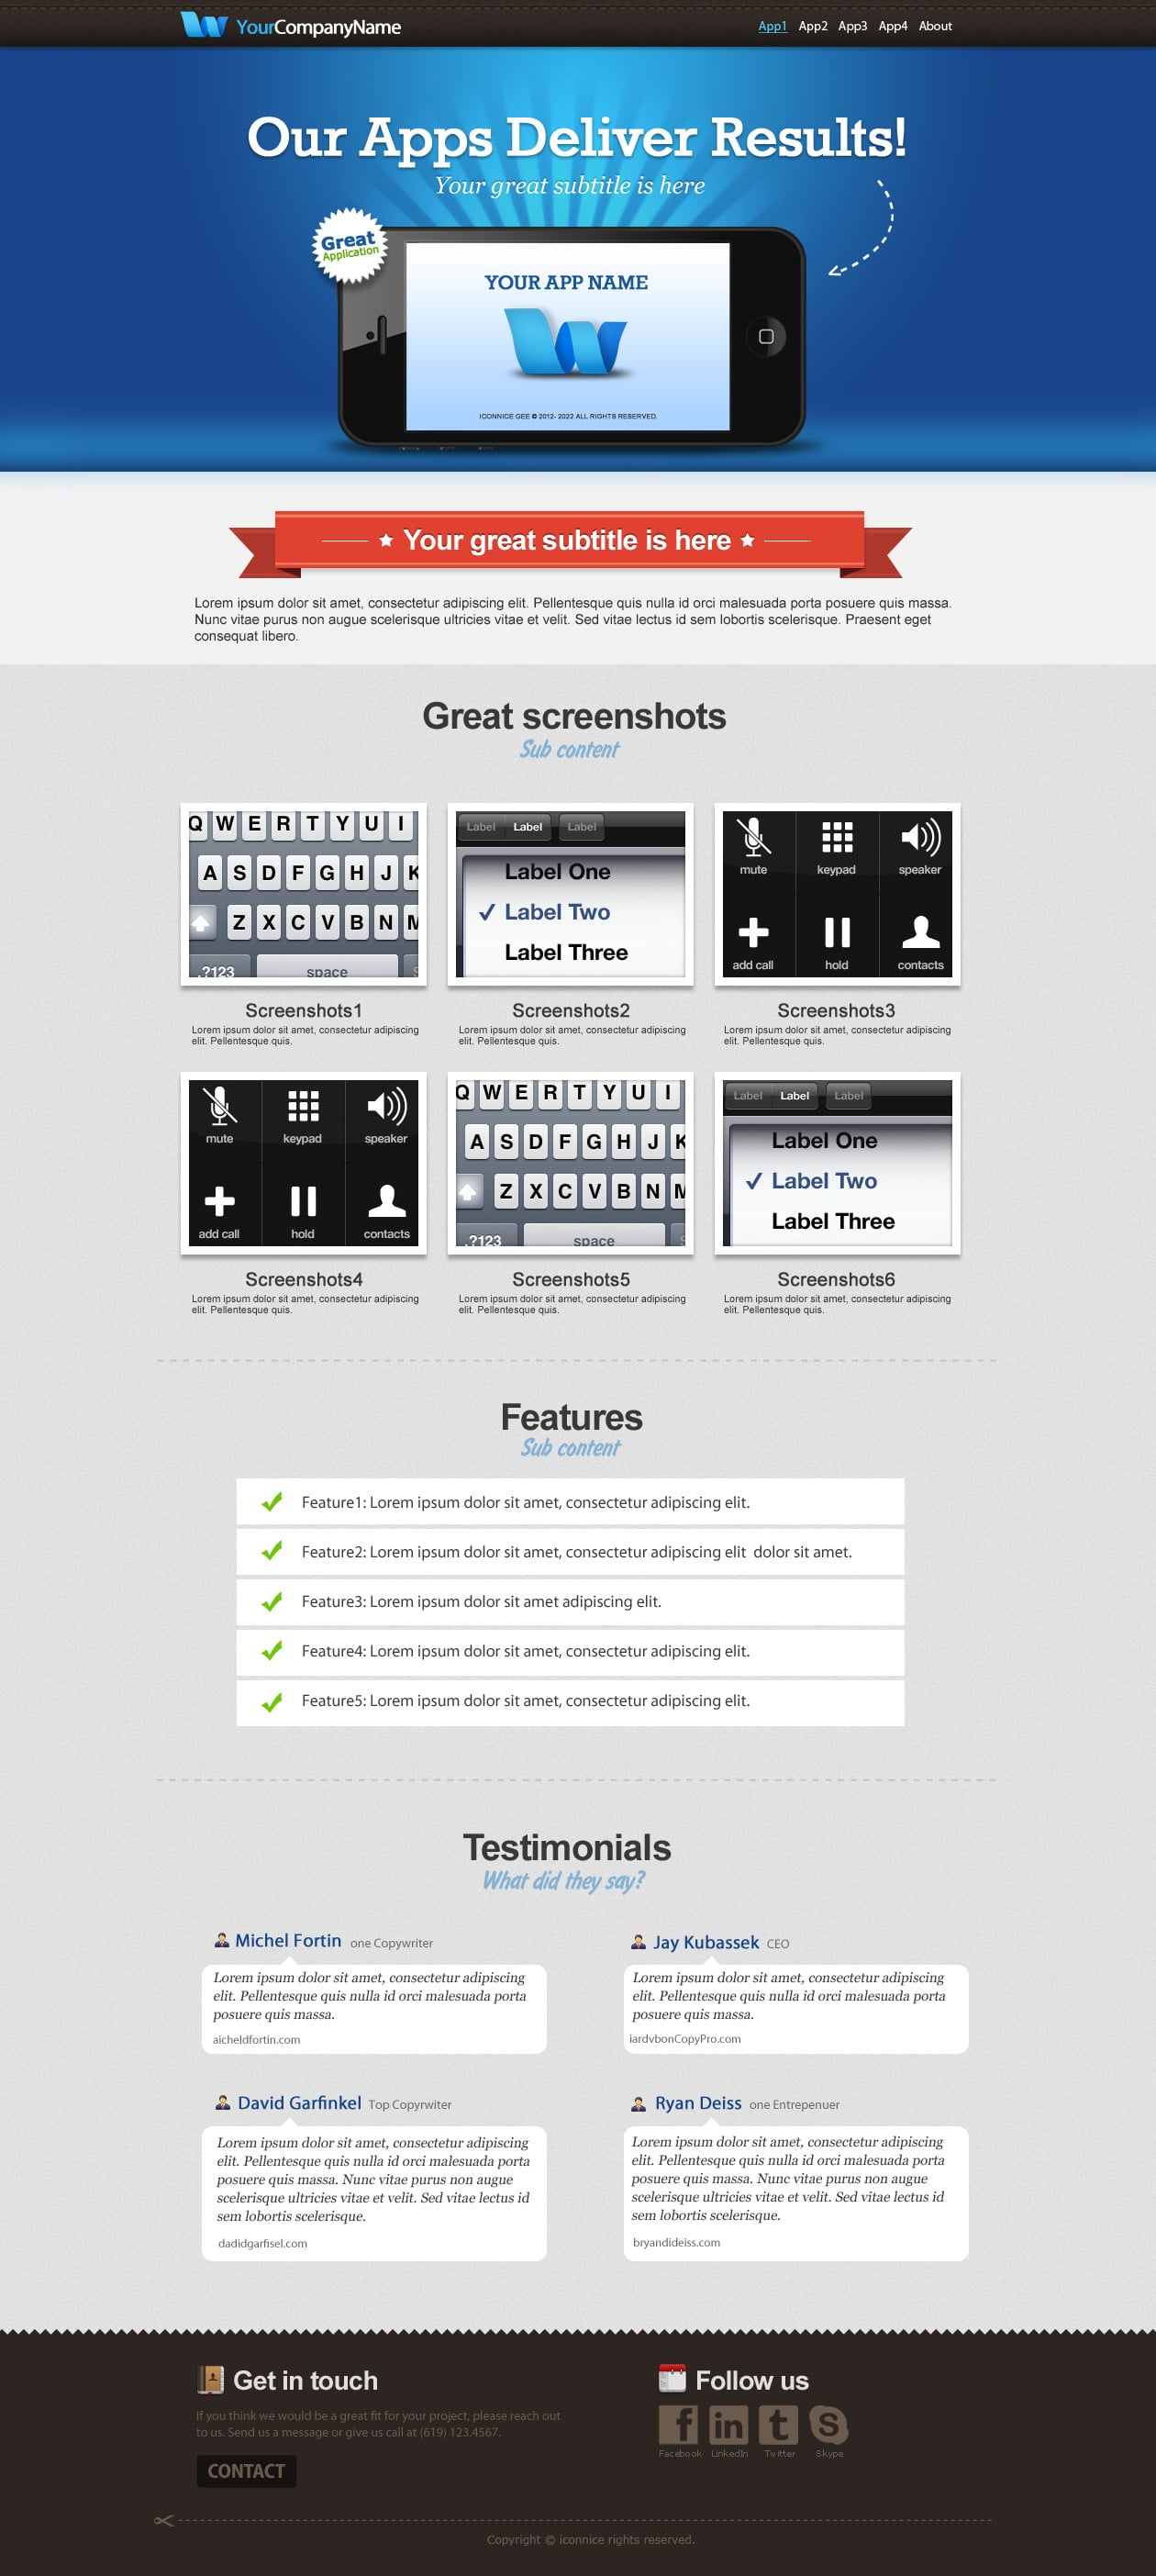 IconNice Big Bundle: 25 iOS app web templates and more! - iPhone2